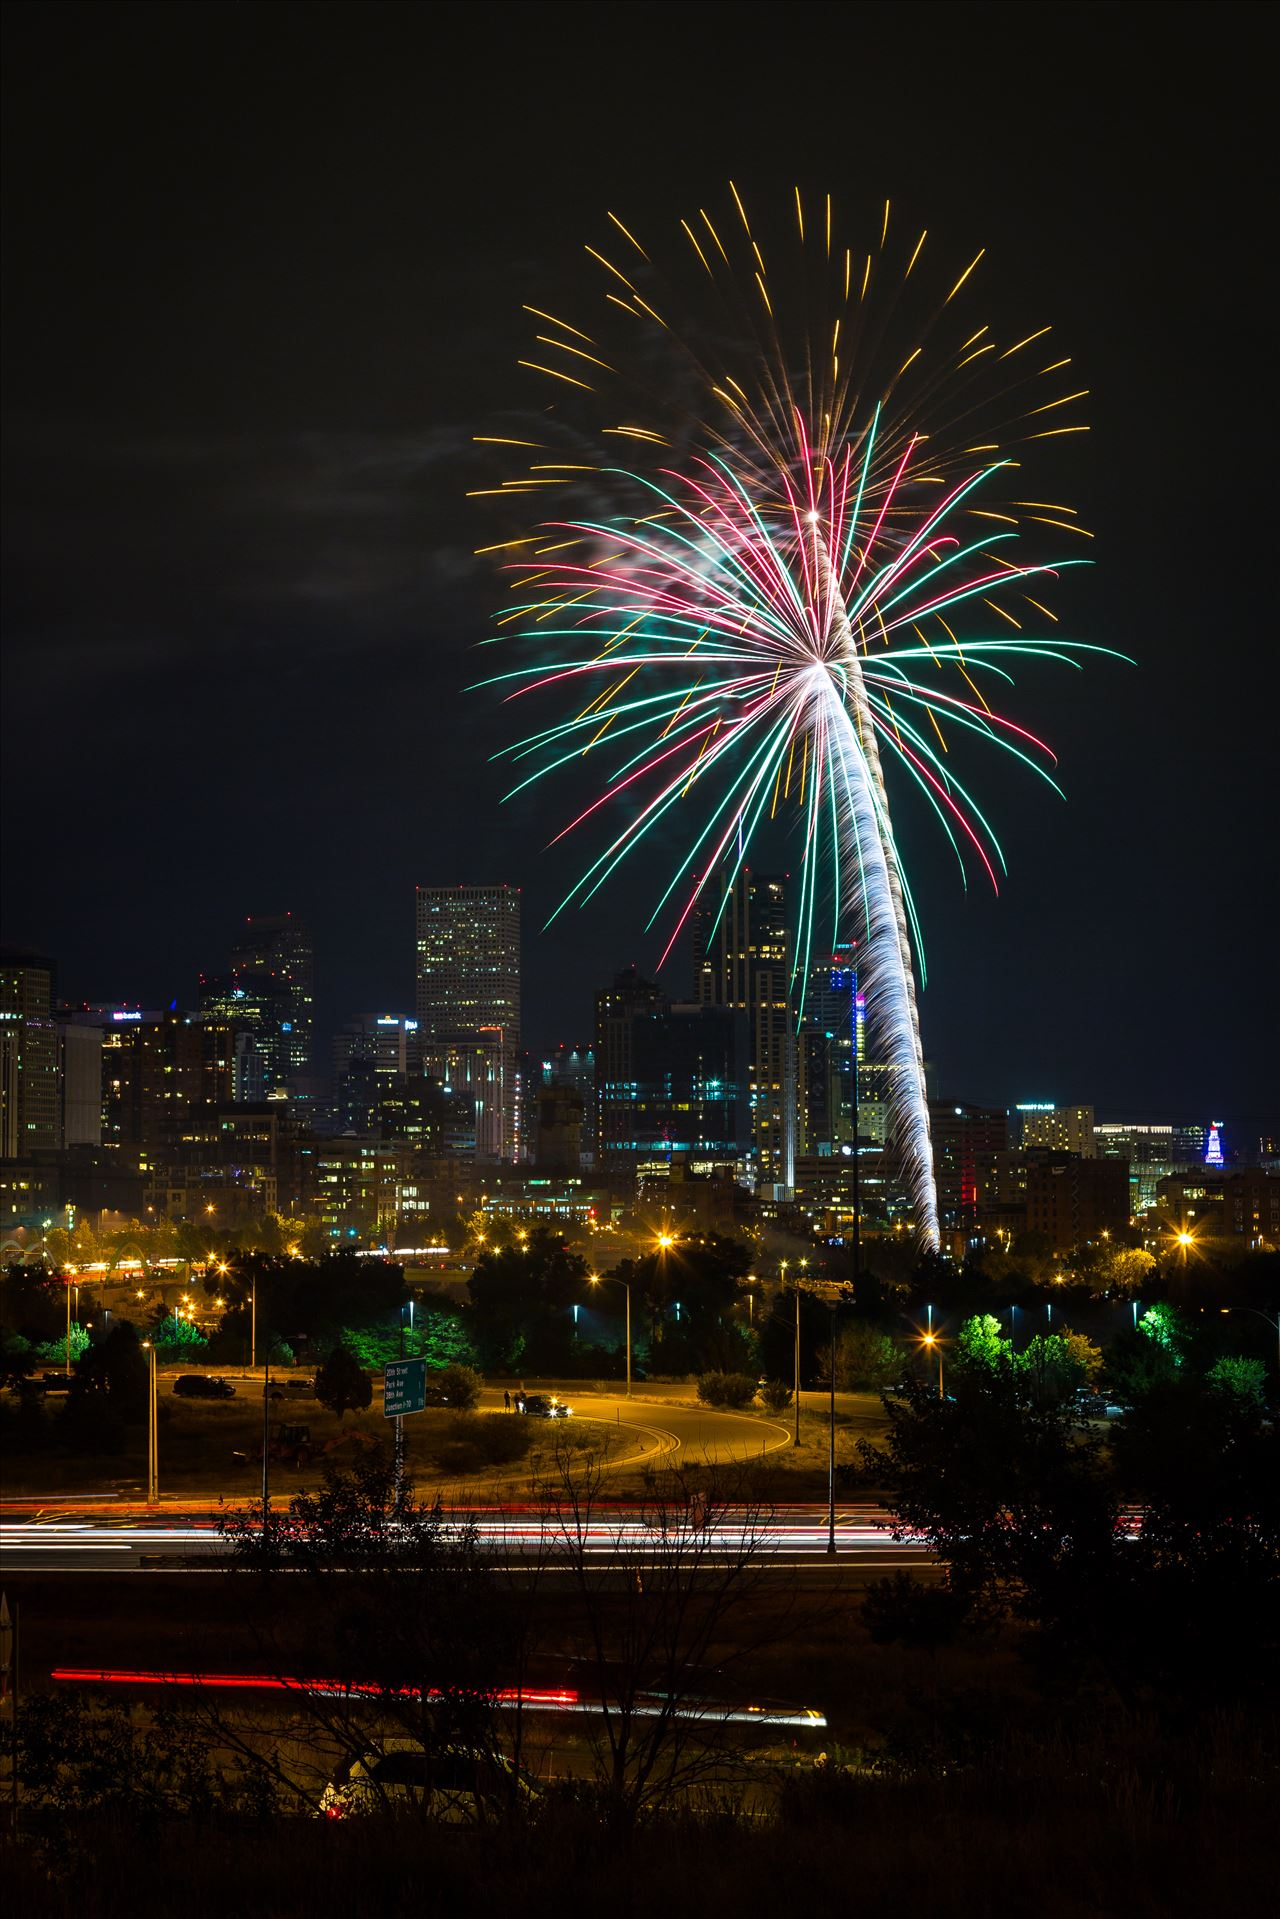 Elitch's Fireworks 2016 - 7 - Fireworks from Elitch Gardens, taken near Speer and Zuni in Denver, Colorado. by Scott Smith Photos